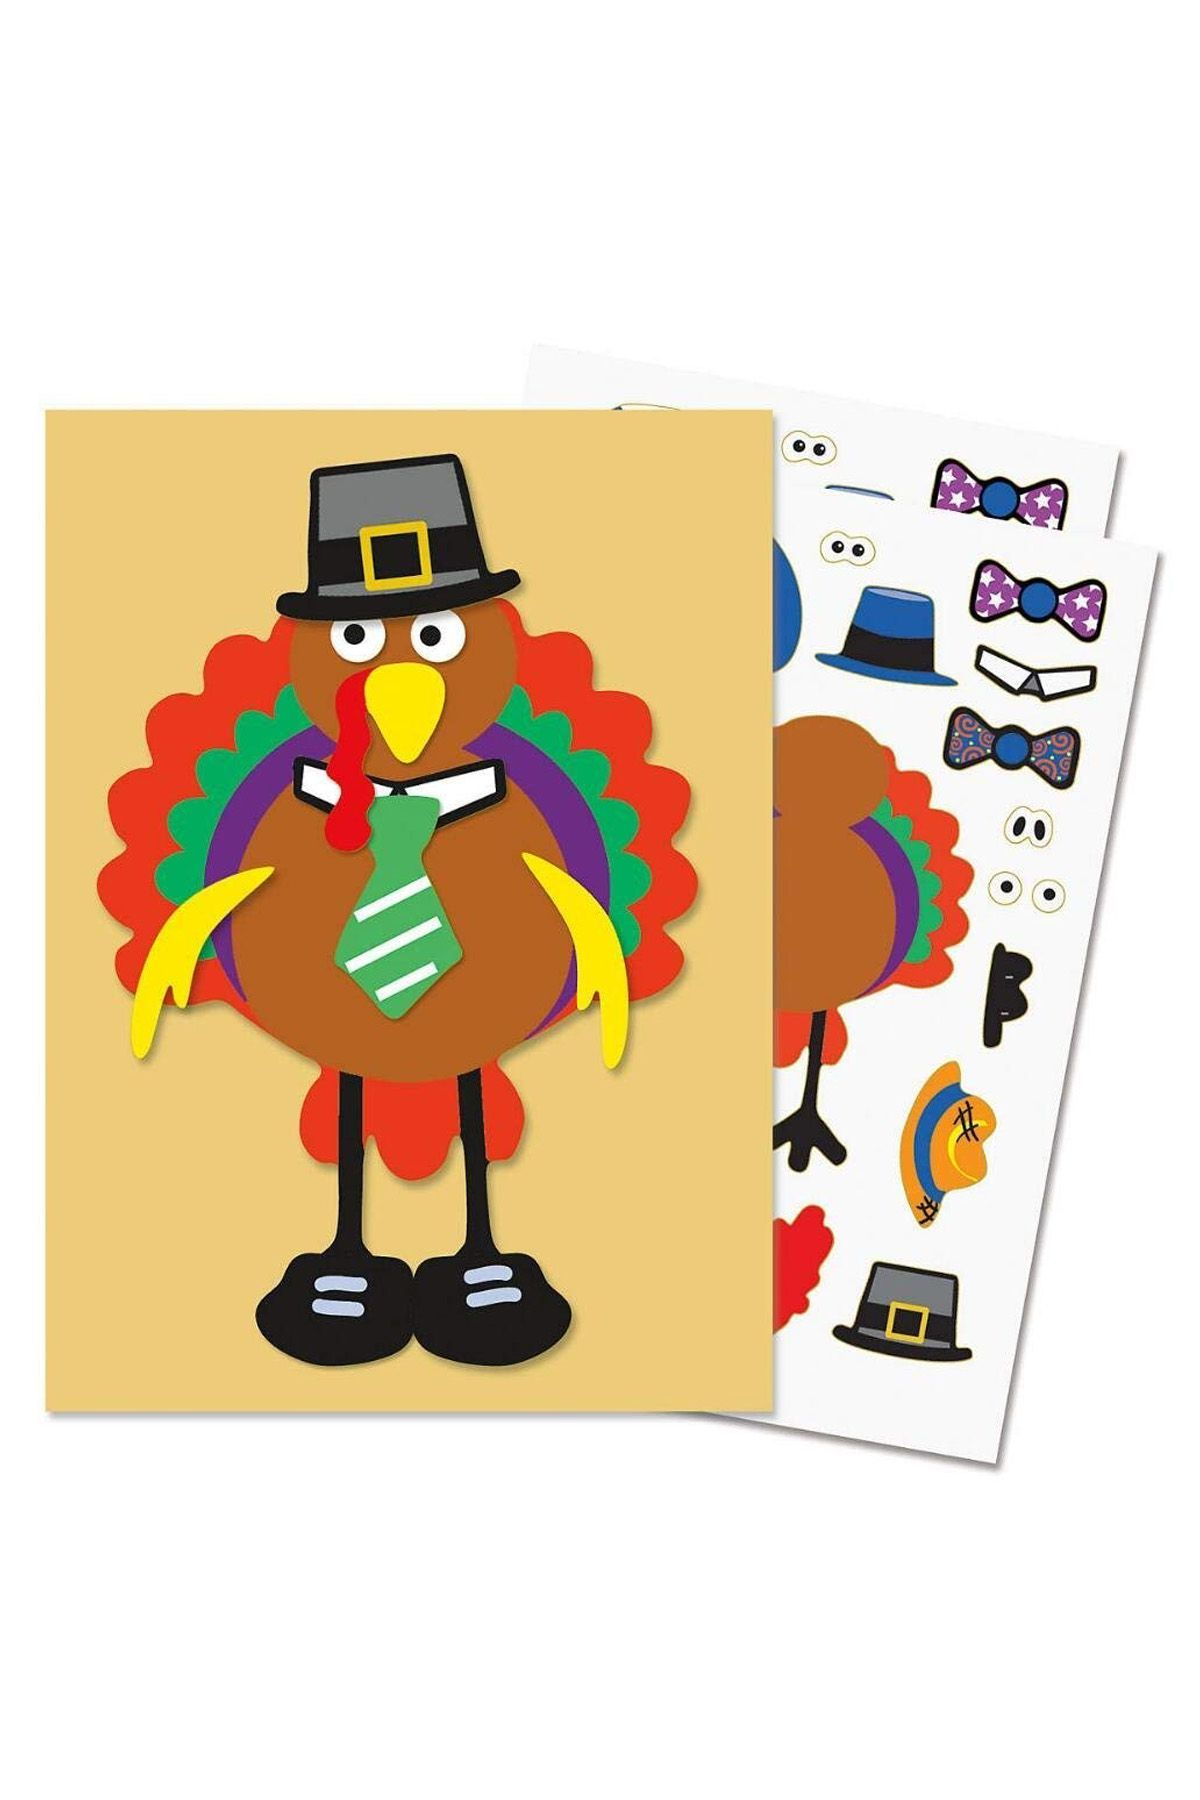 Make a turkey sticker. Feast clipart family oriented